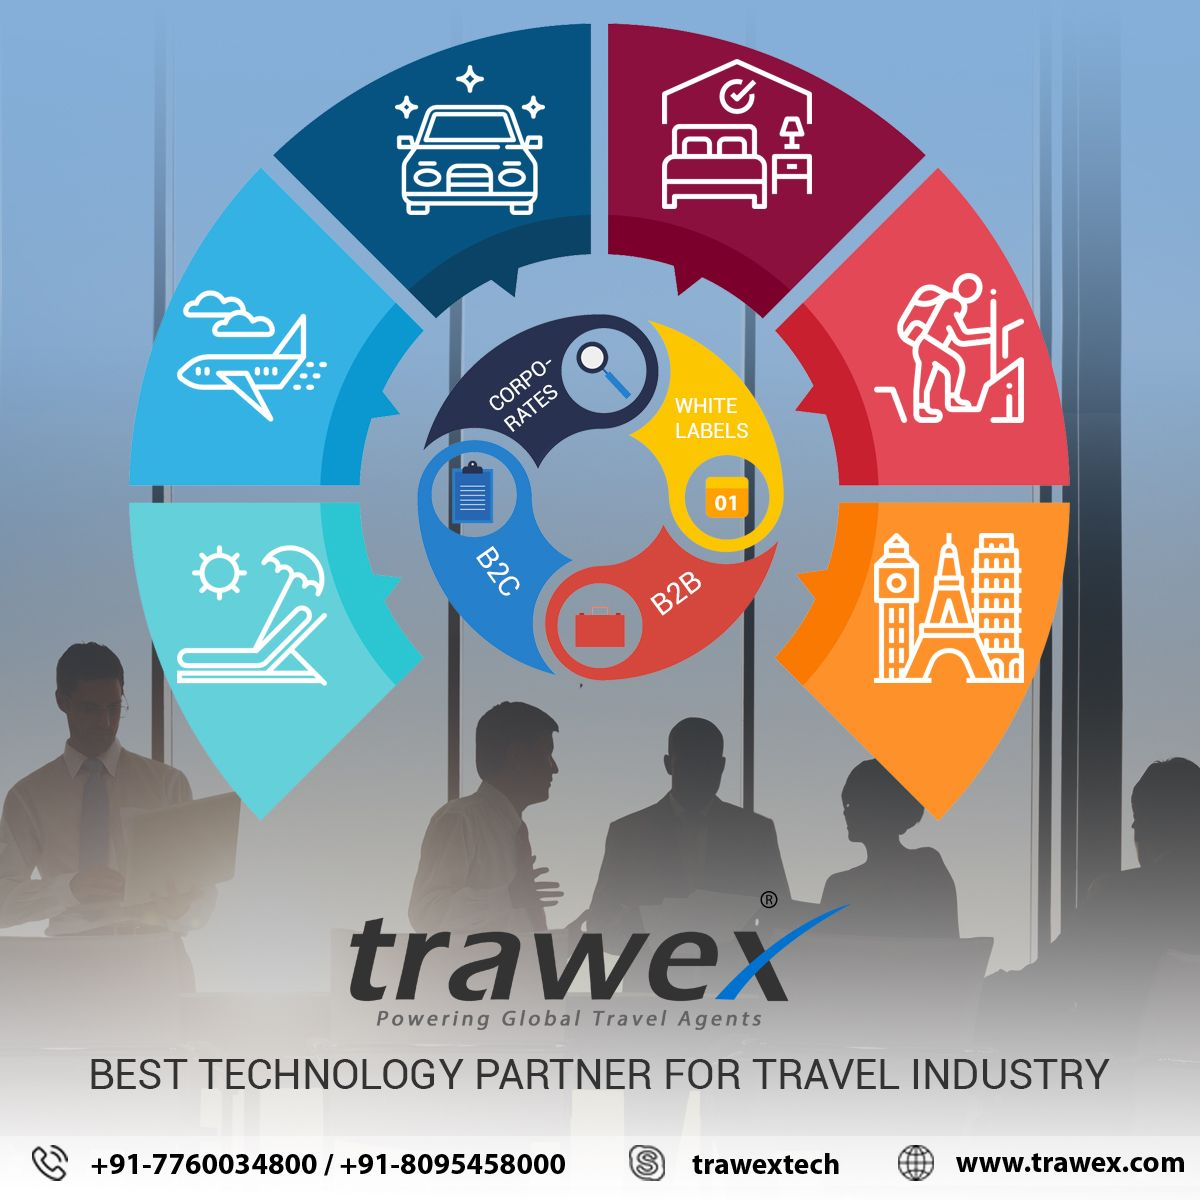 Trawex can seamlessly integrate to the Amadeus, Galileo, and Sabre